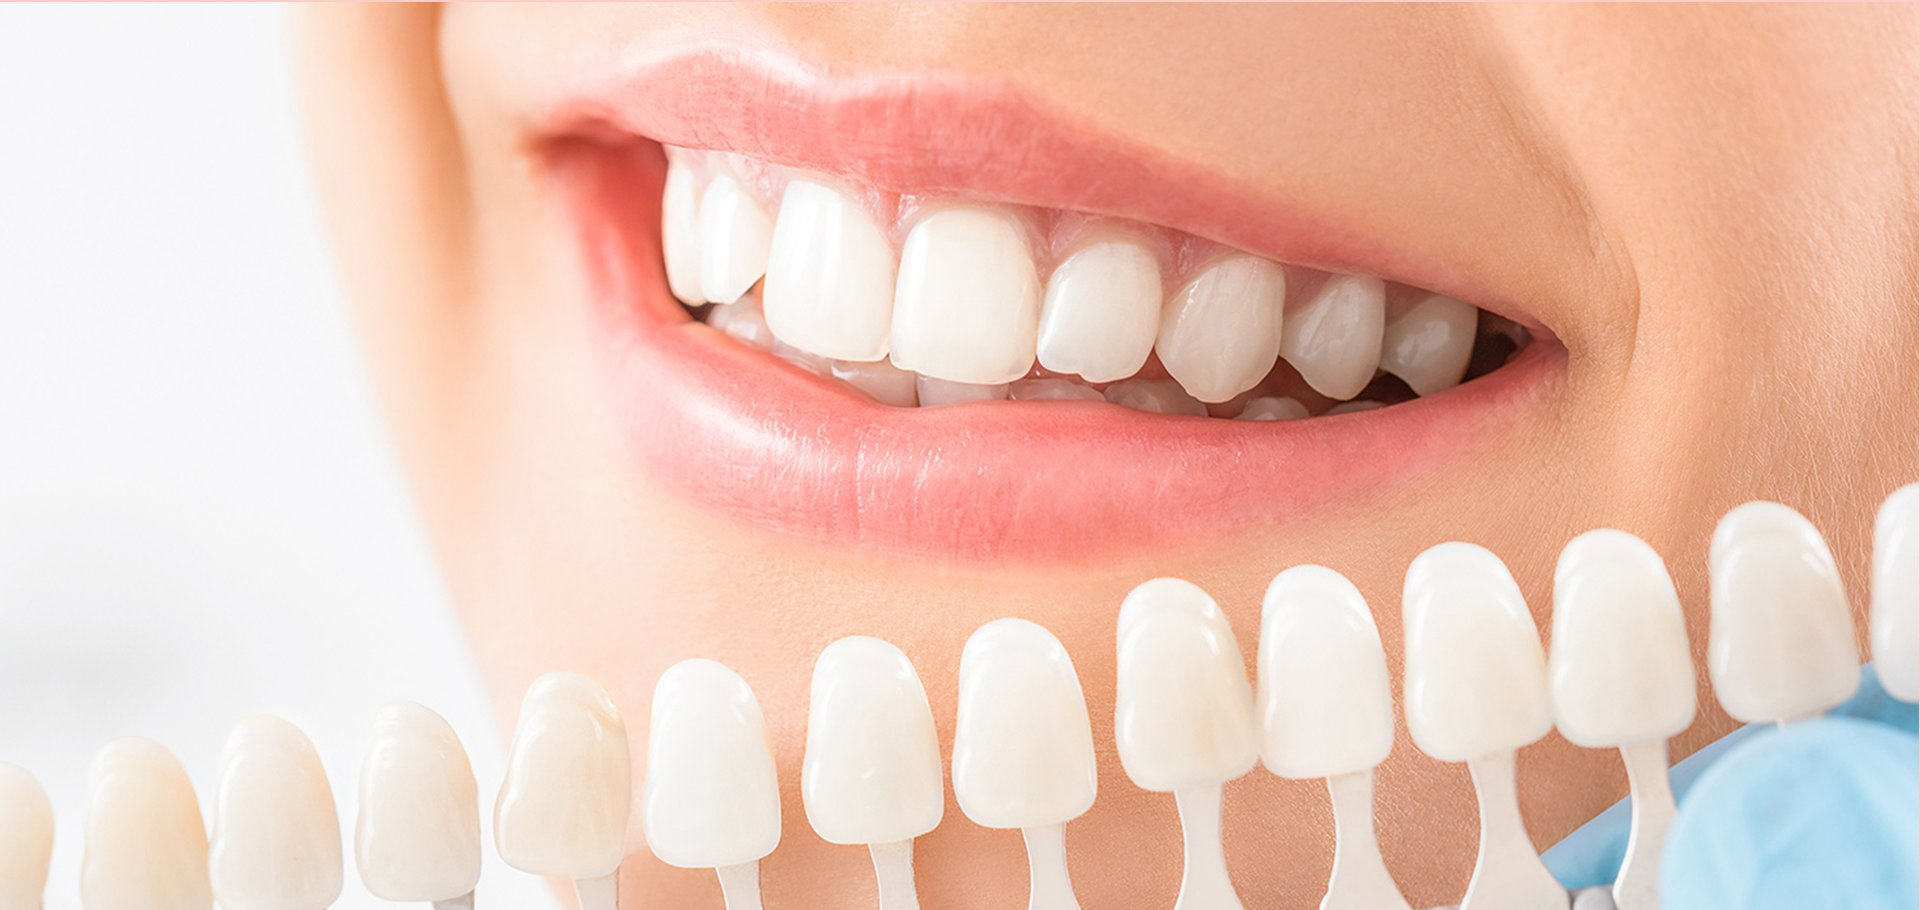 An image to illustrate the dentist checking which porcelain crown is the best match for the natural color of the patient's tooth.